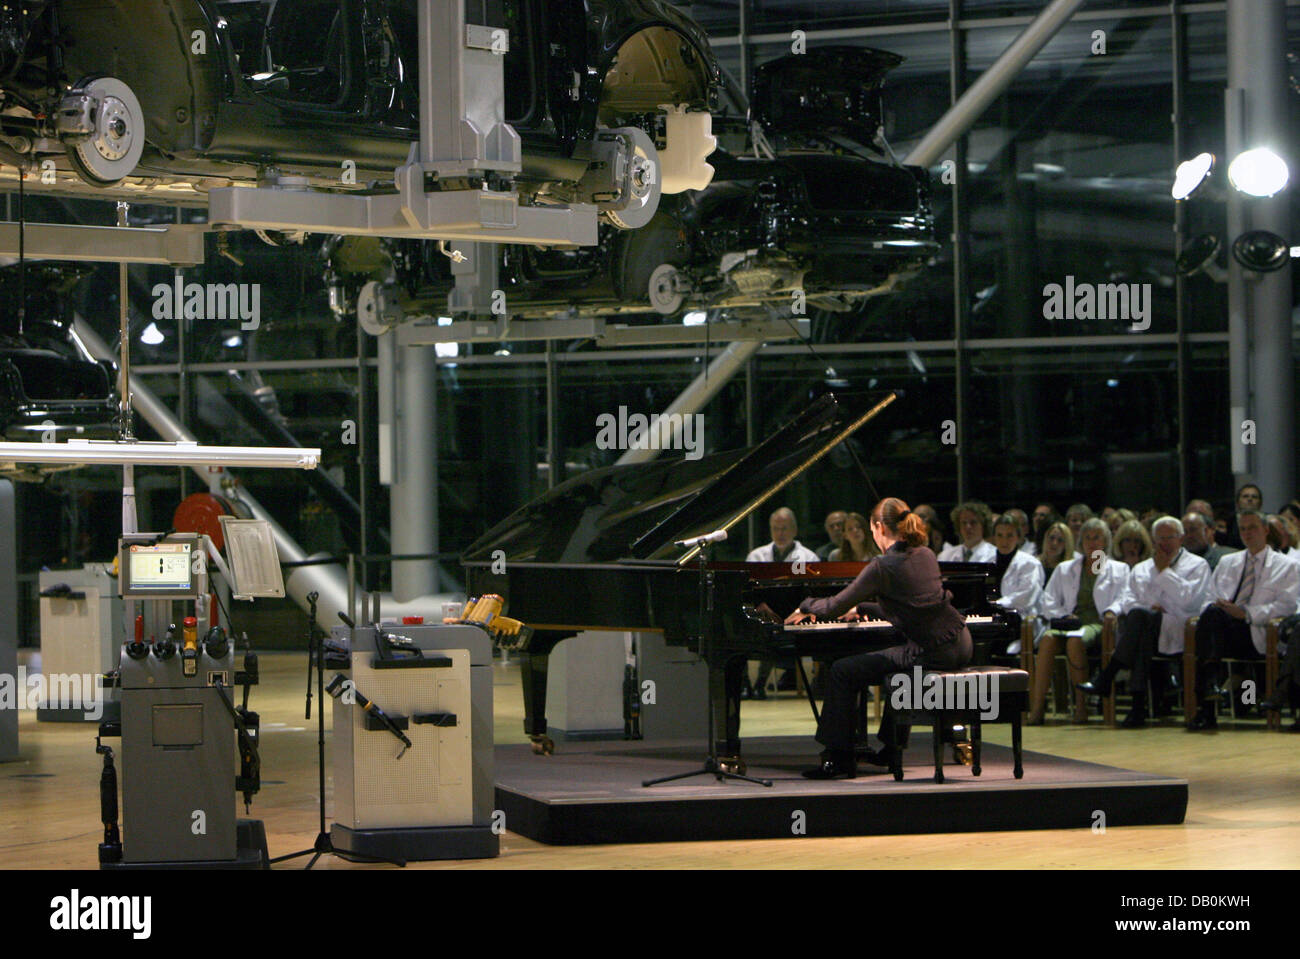 French pianist Helene Grimaud plays a concert at a Volkswagen automobile plant for people wearing white laboratory - Stock Image